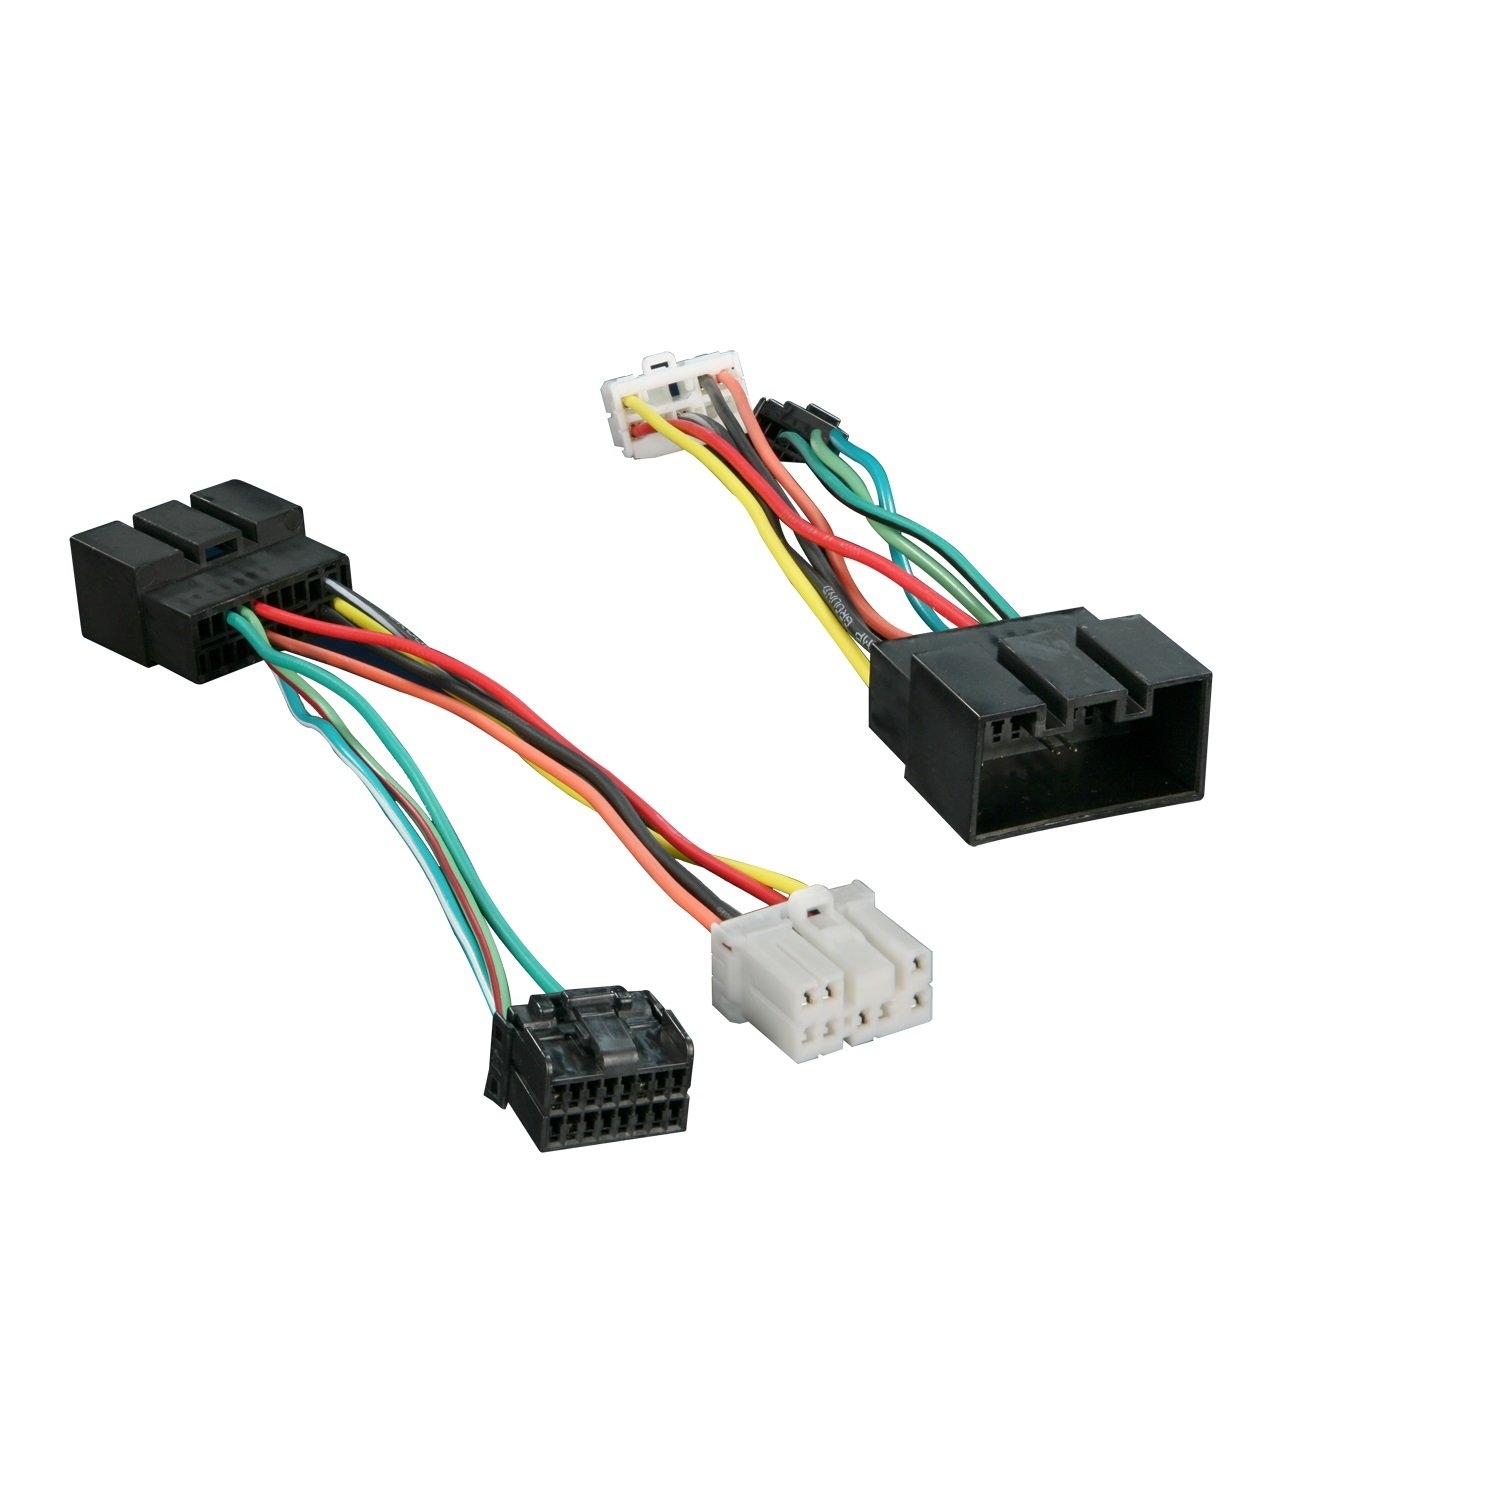 metra 70 5716 turbowire car stereo wiring harness walmart com radio wiring harnesses walmart [ 1500 x 1500 Pixel ]